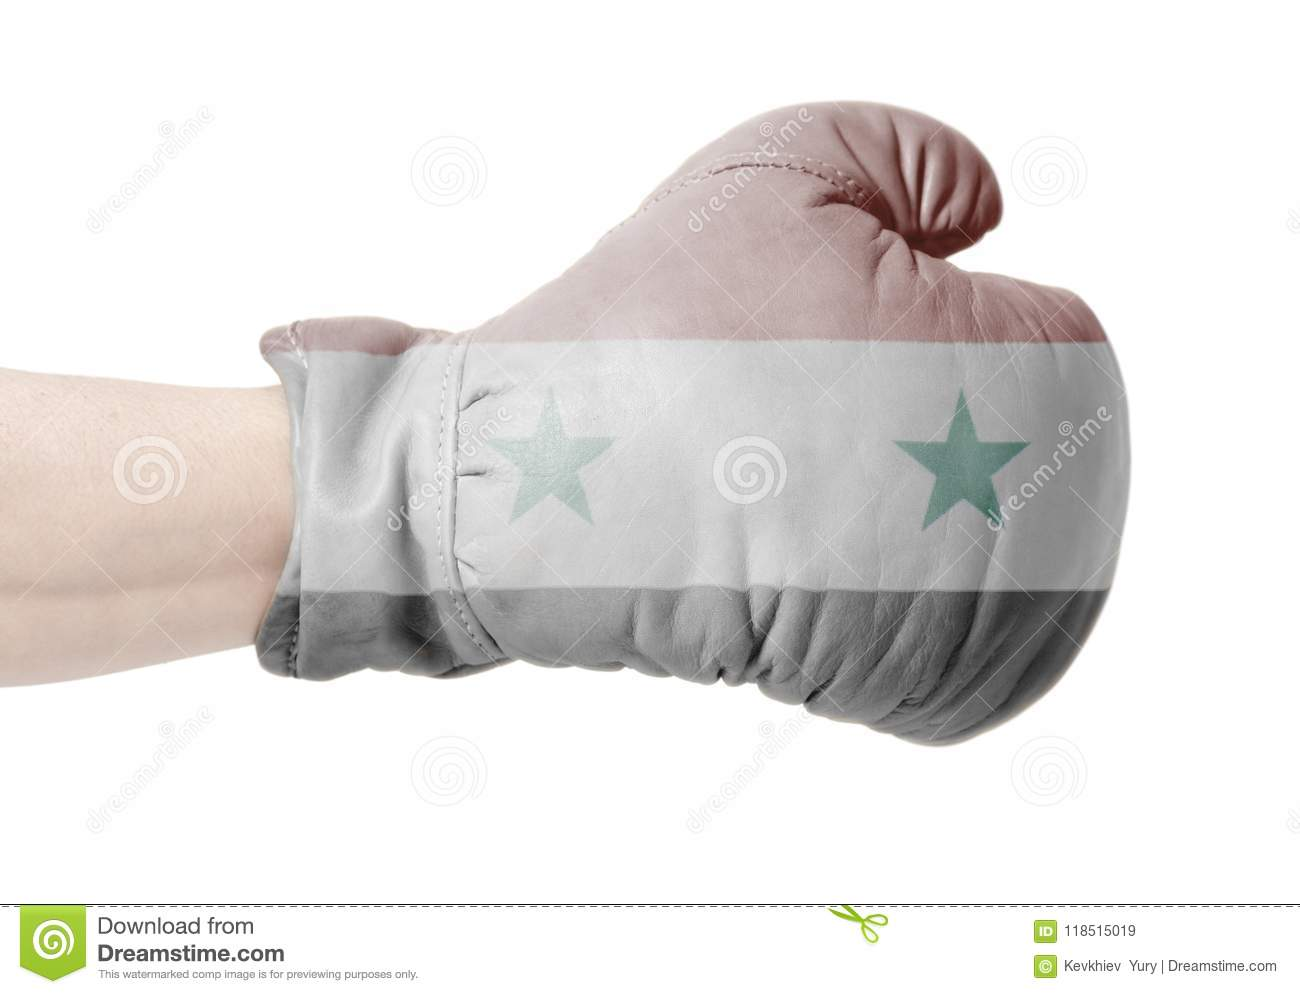 Flag of Syria on boxing glove